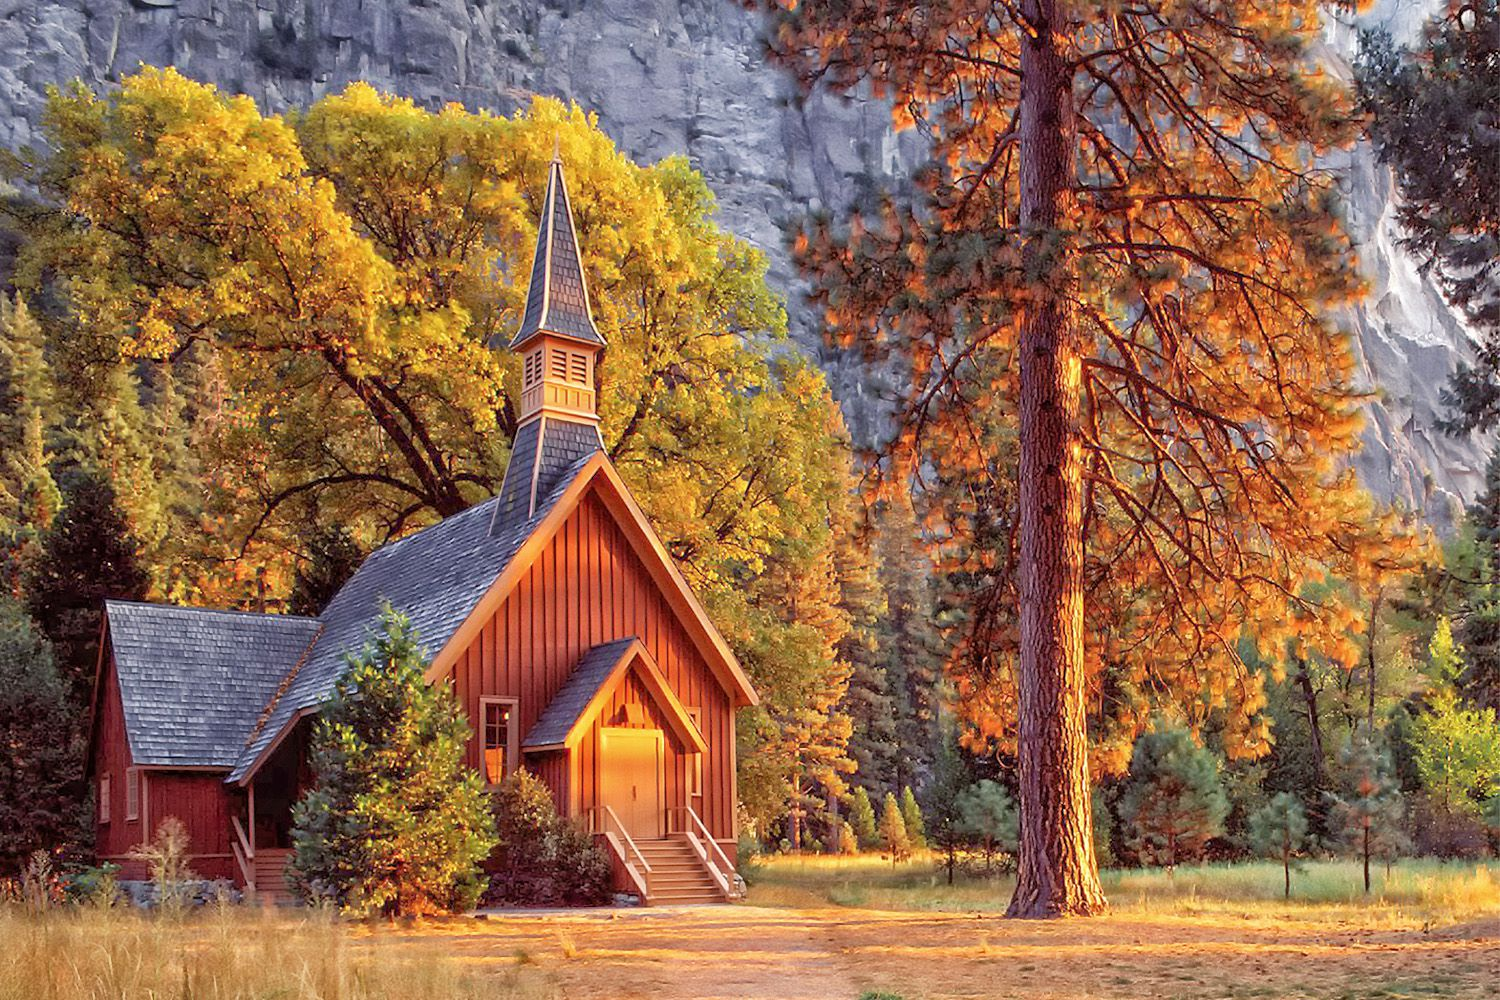 Yosemite in Fall - What You Need to Know Before You Go